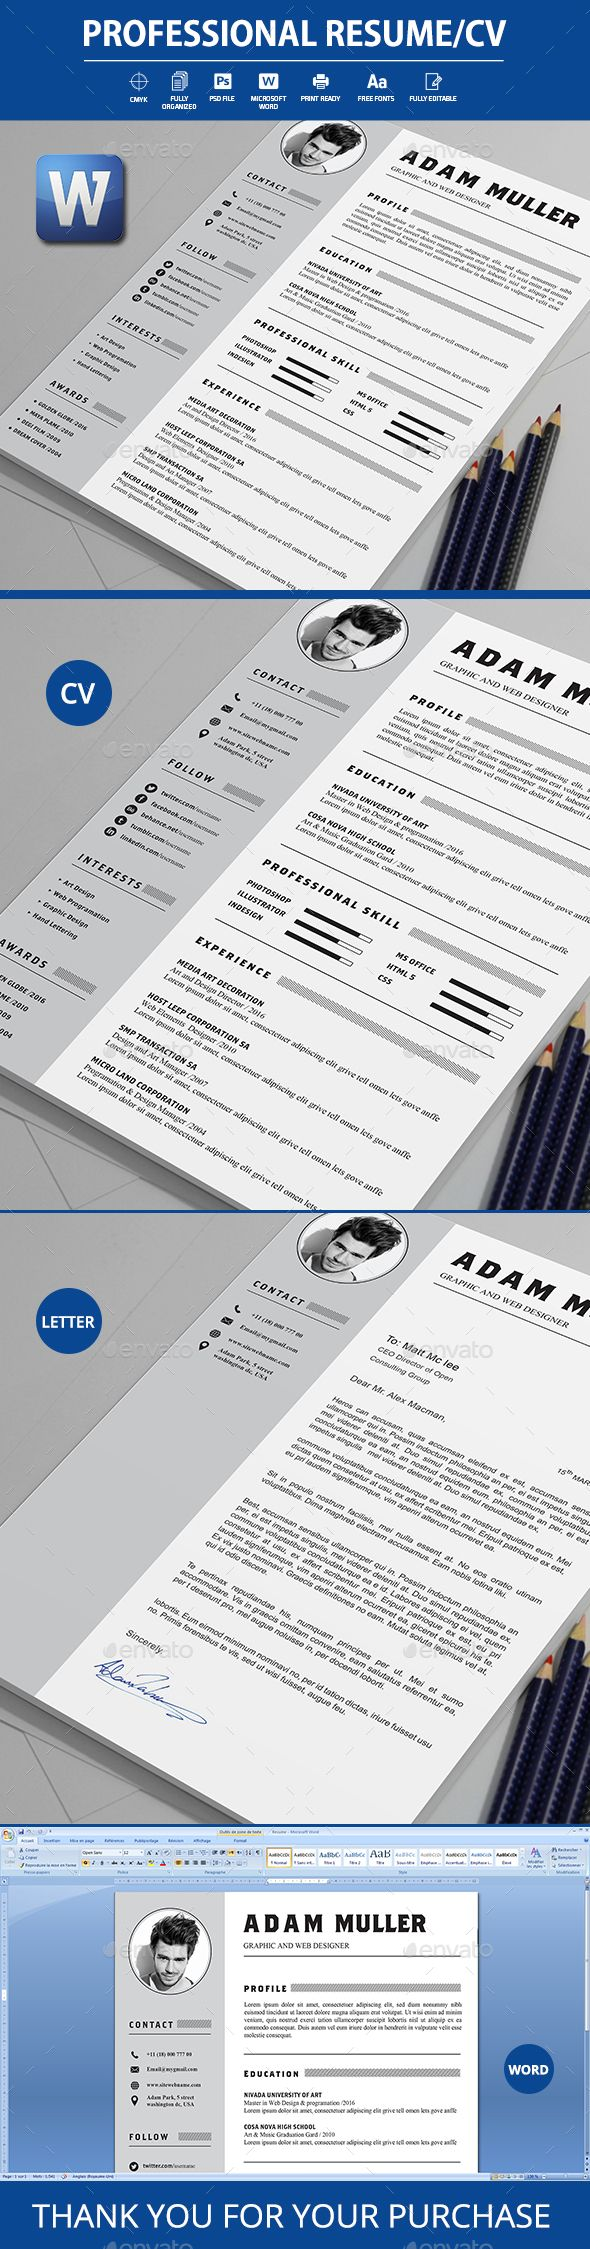 Resume 102 best 06 RESUME images on Pinterest